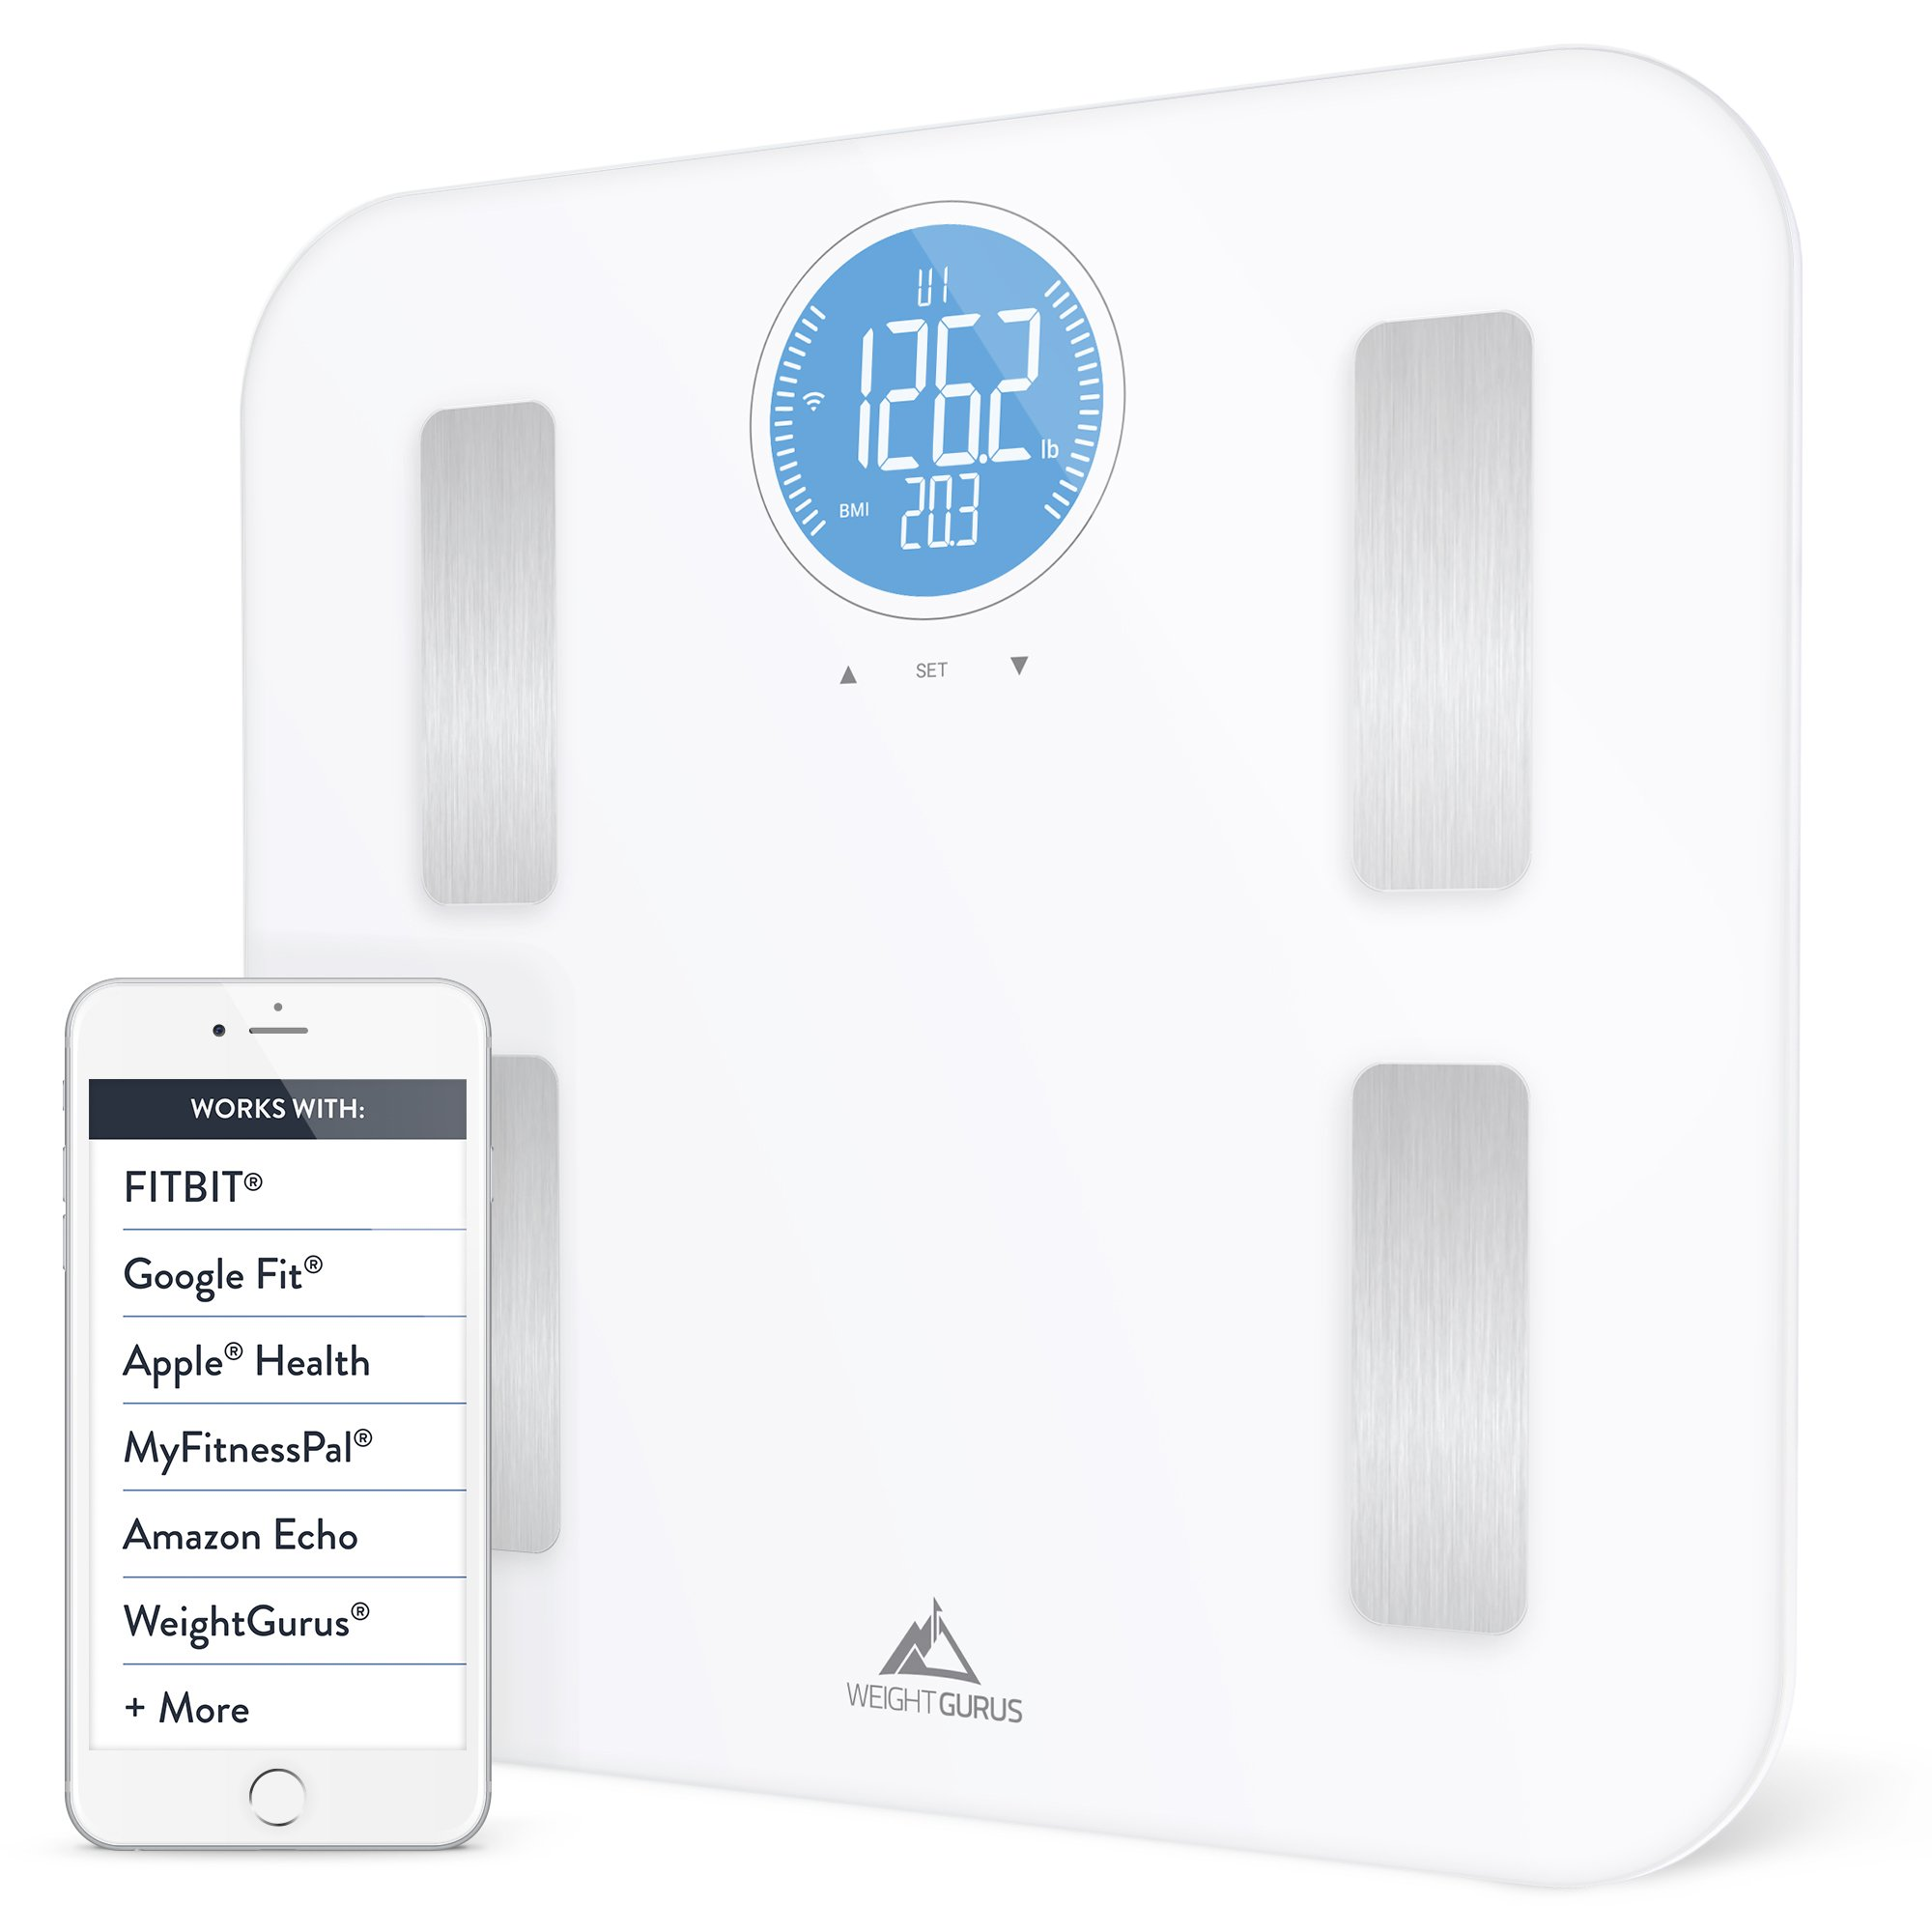 Weight Gurus WiFi Smart Connected Body Fat Scale with Large Backlit LCD (White + Stainless) (Off-White) by Greater Goods